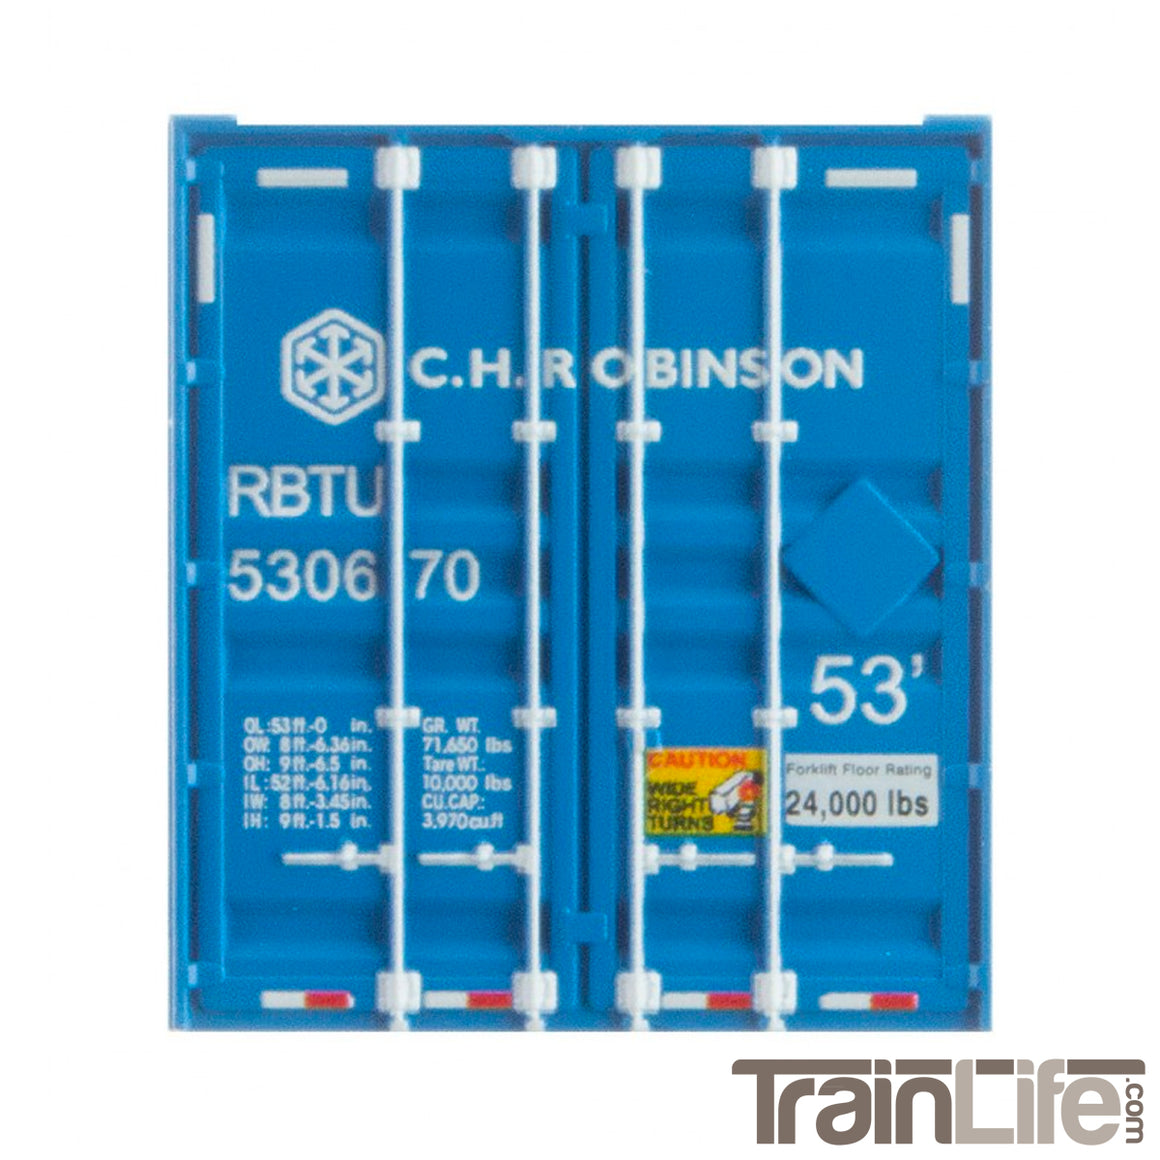 N Scale: 53' Corrugated Container - C.H. Robinson